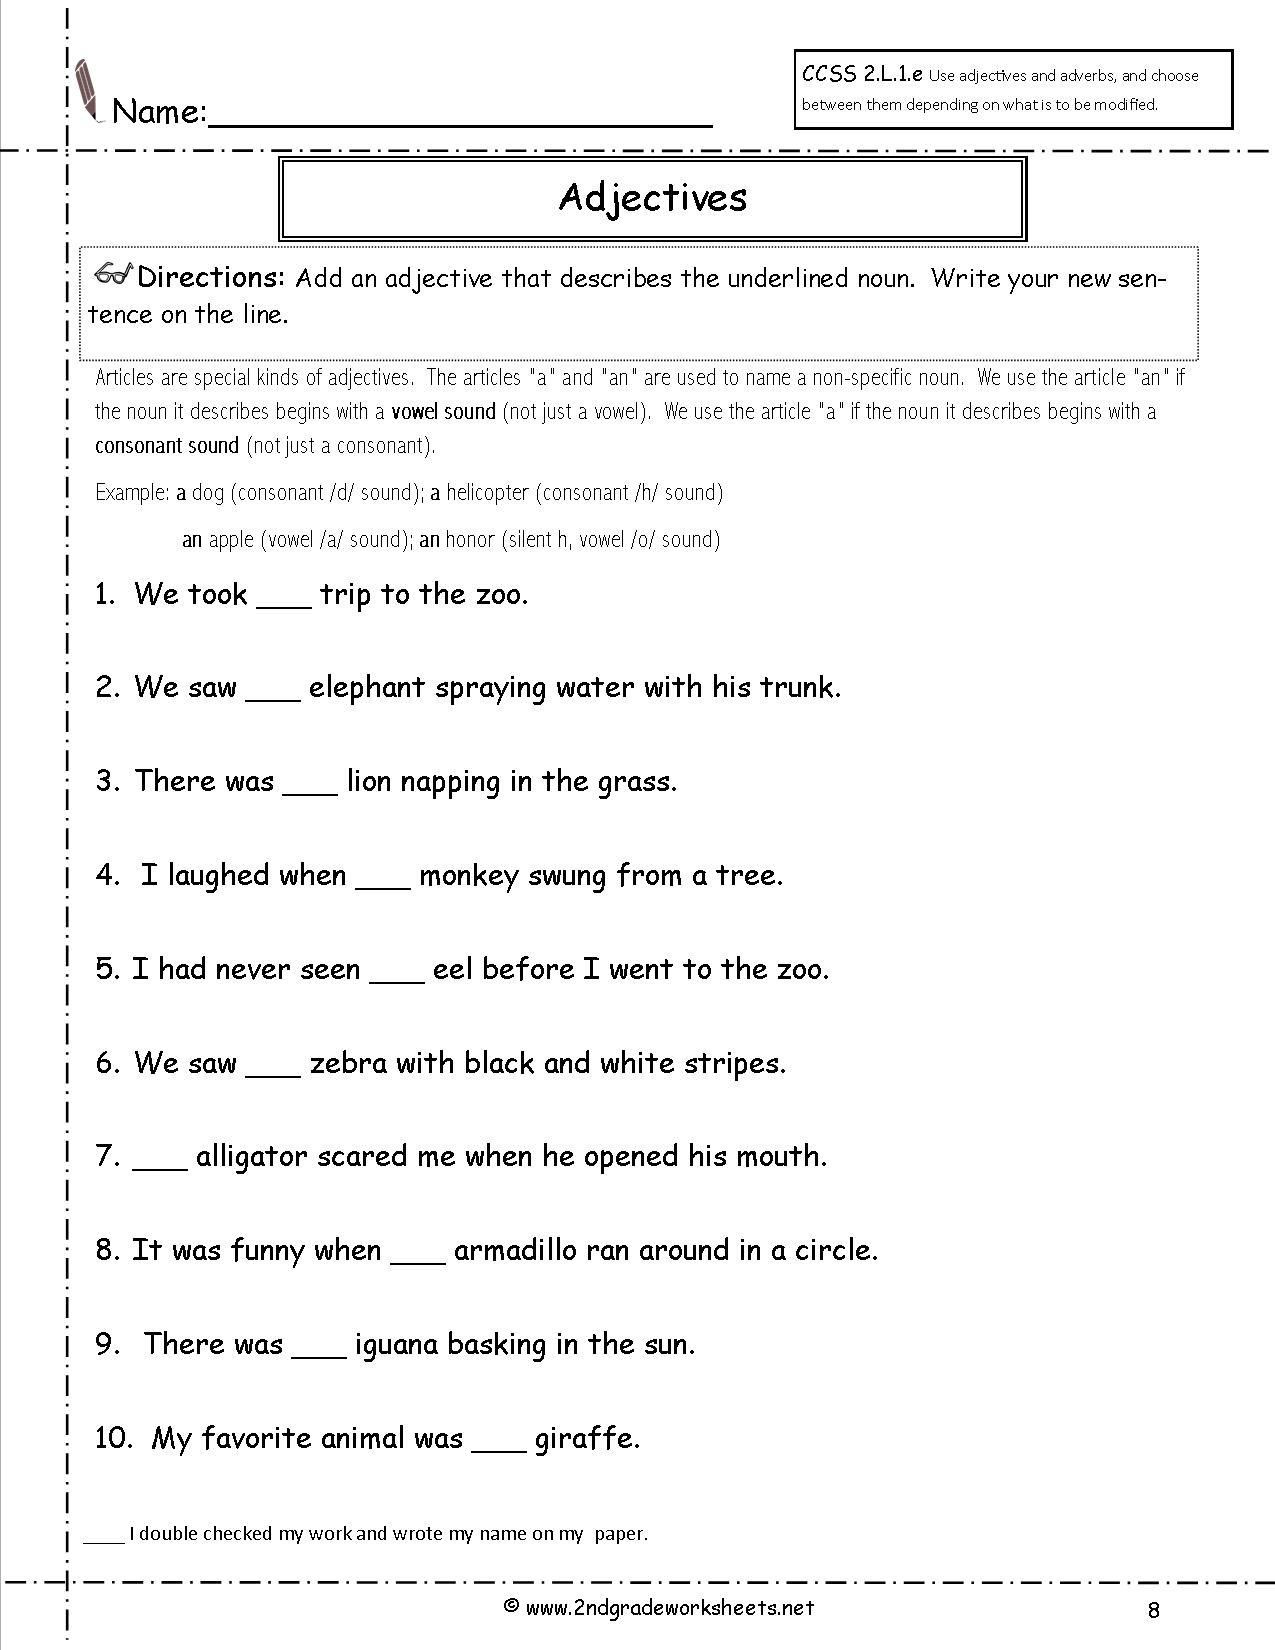 16 Best Images Of English Contractions Worksheets